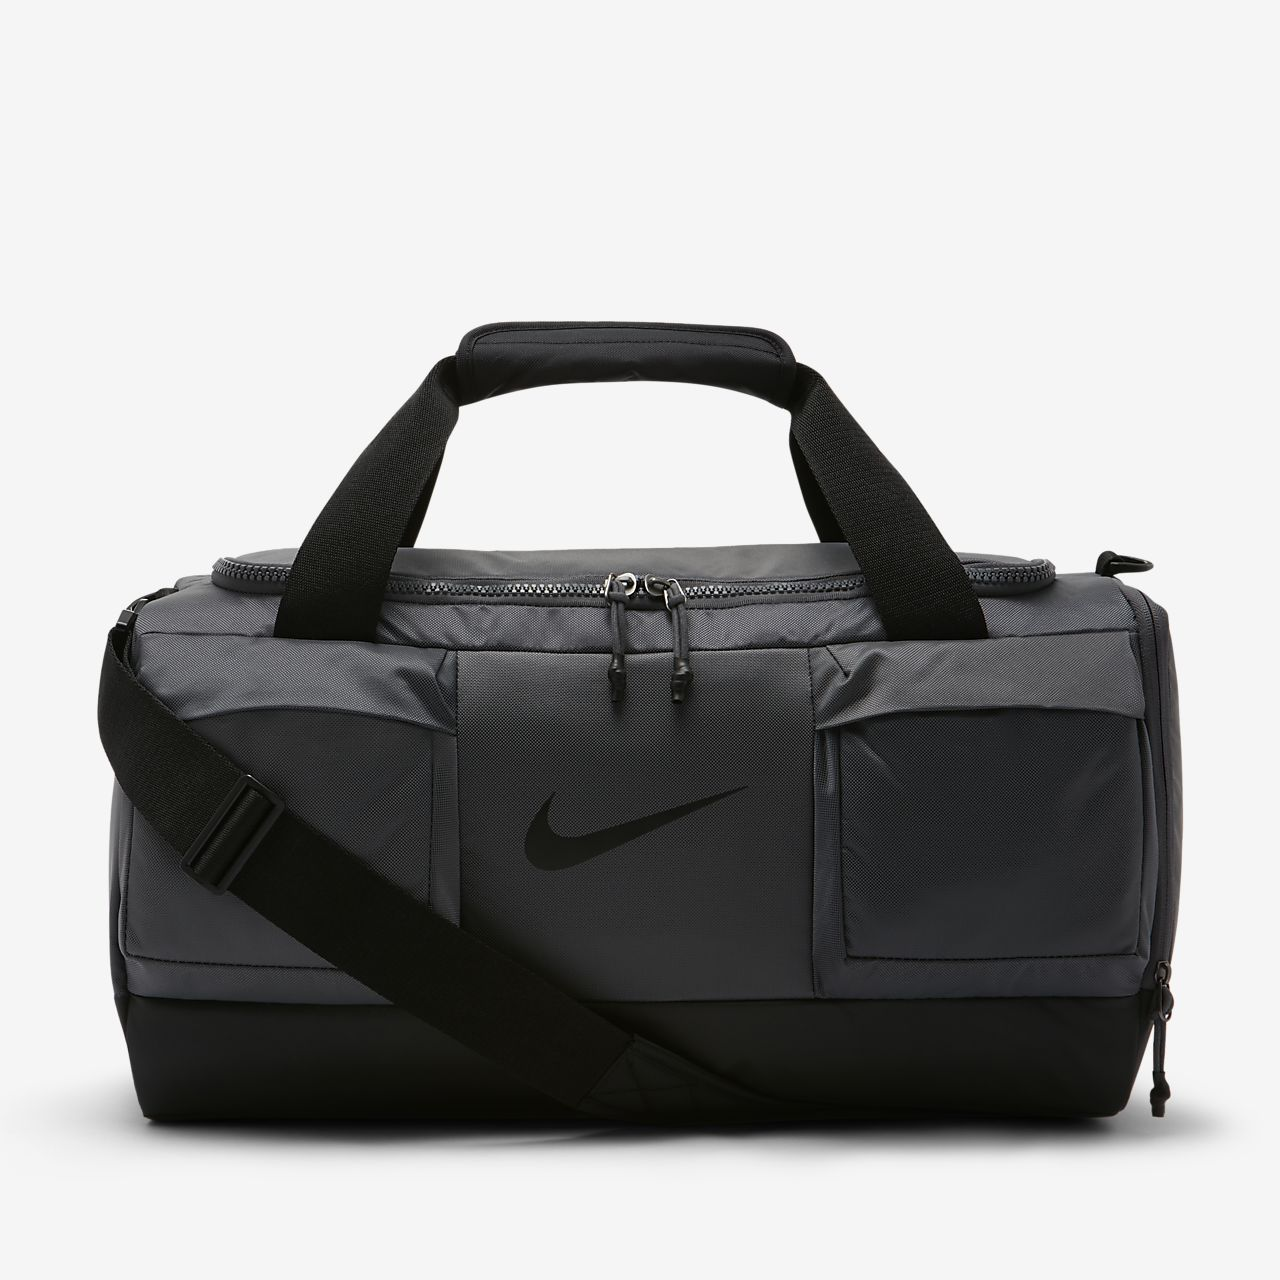 d37ae0f48cdc Nike Vapor Power Men s Training Duffel Bag (Small). Nike.com DK